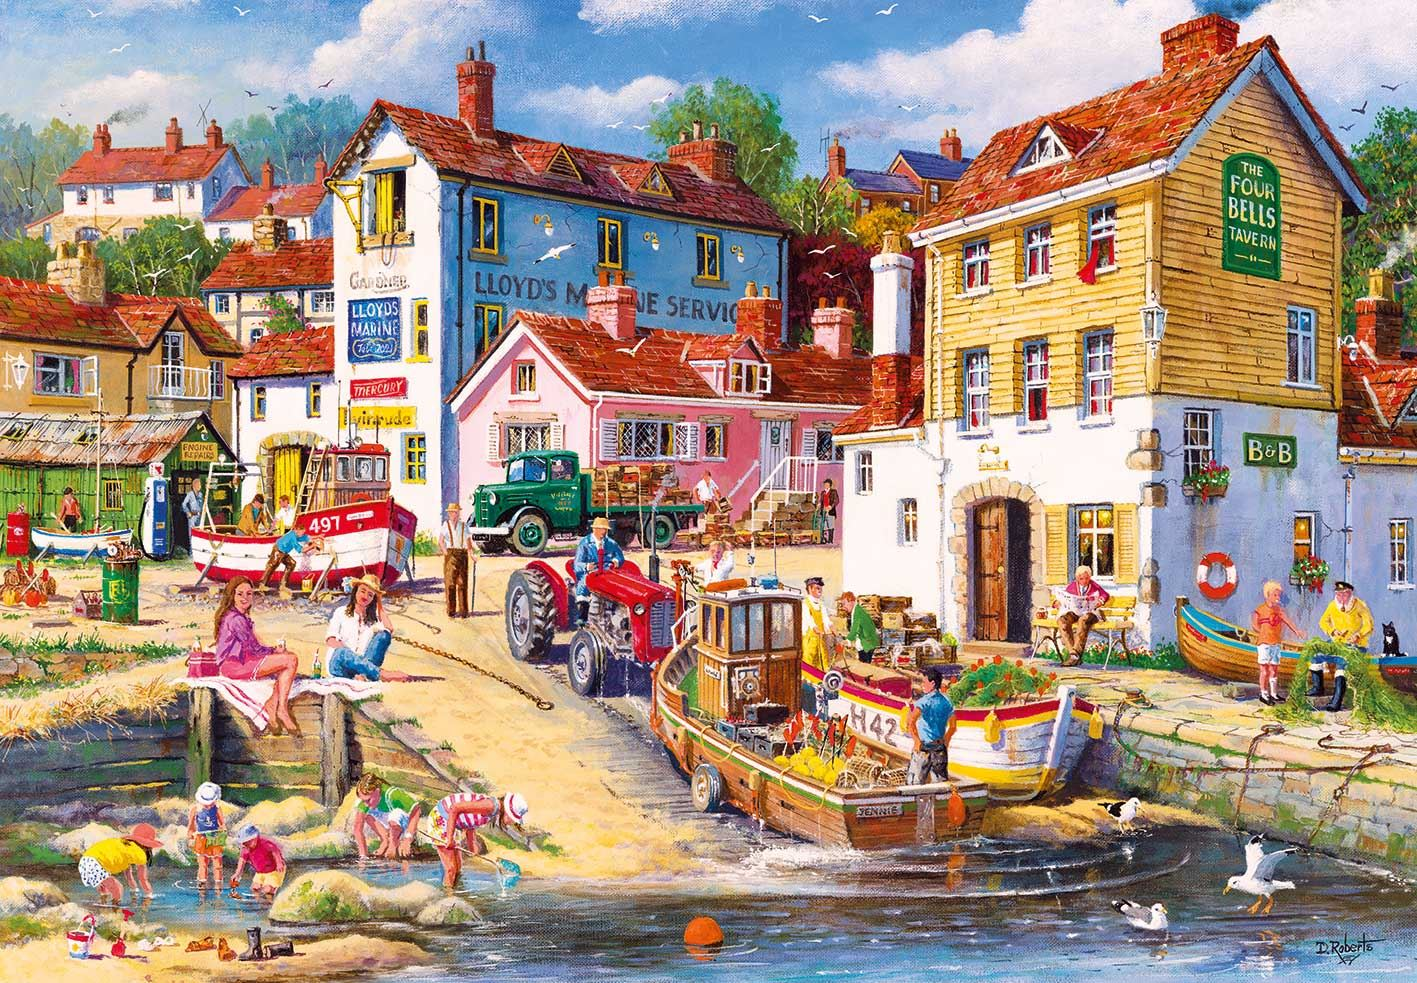 Gibsons The Four Bells Jigsaw Puzzle (2000 pieces)